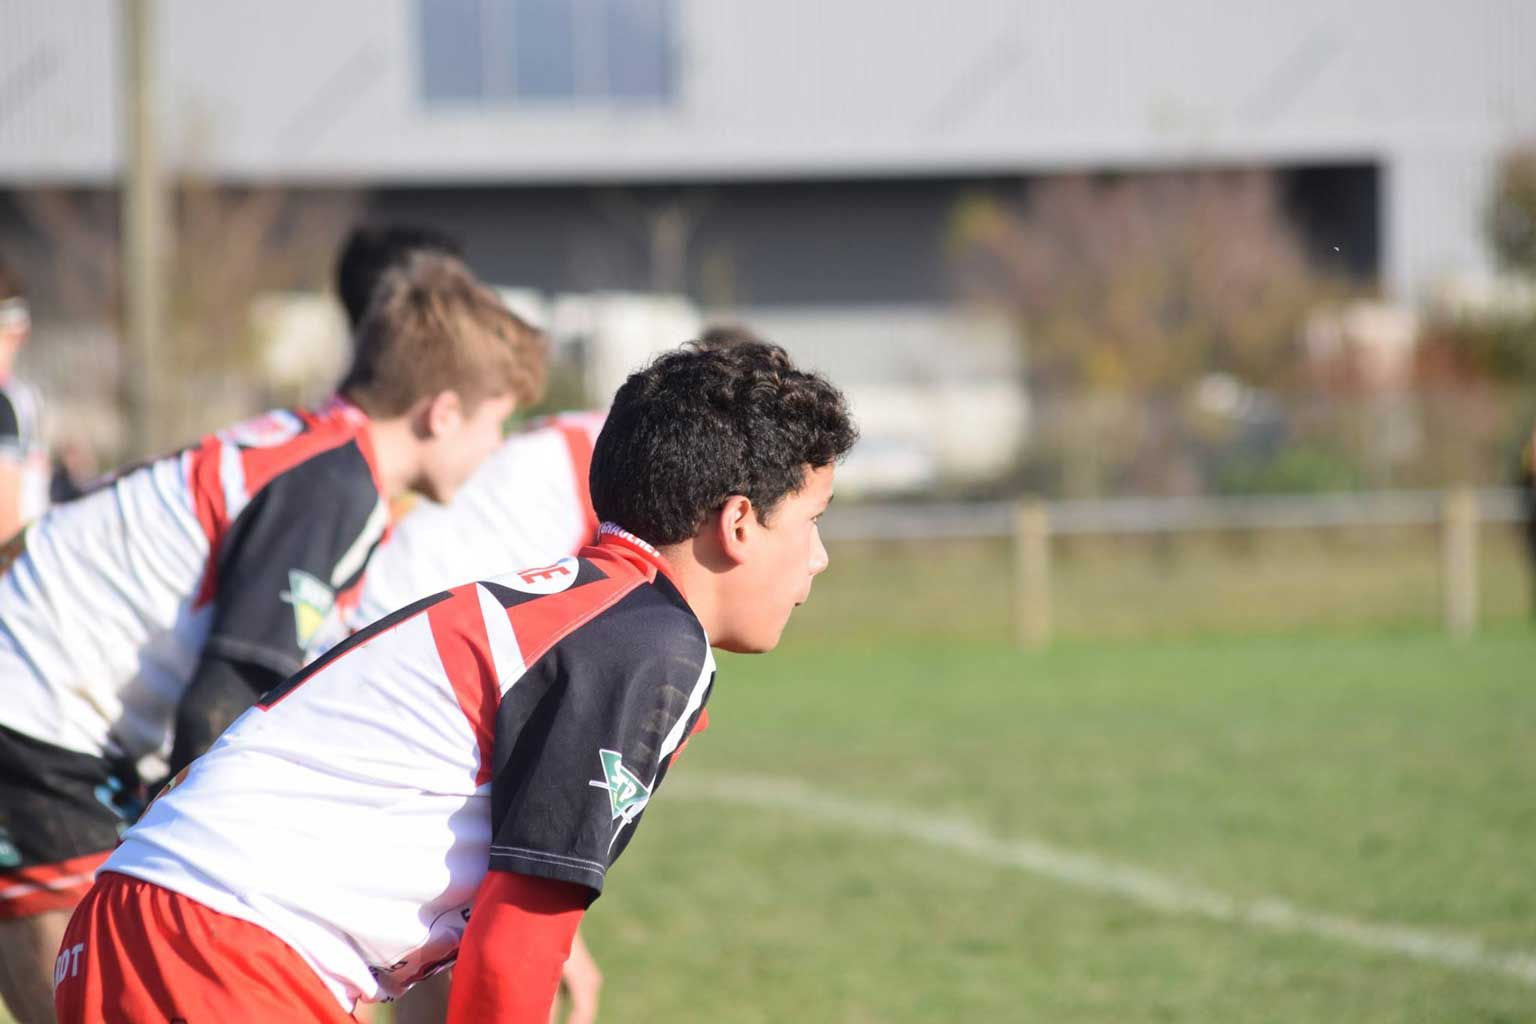 © Maeva Franco - U16 - Graulhet vs Alban/Valence/Lacaune - Photo 20